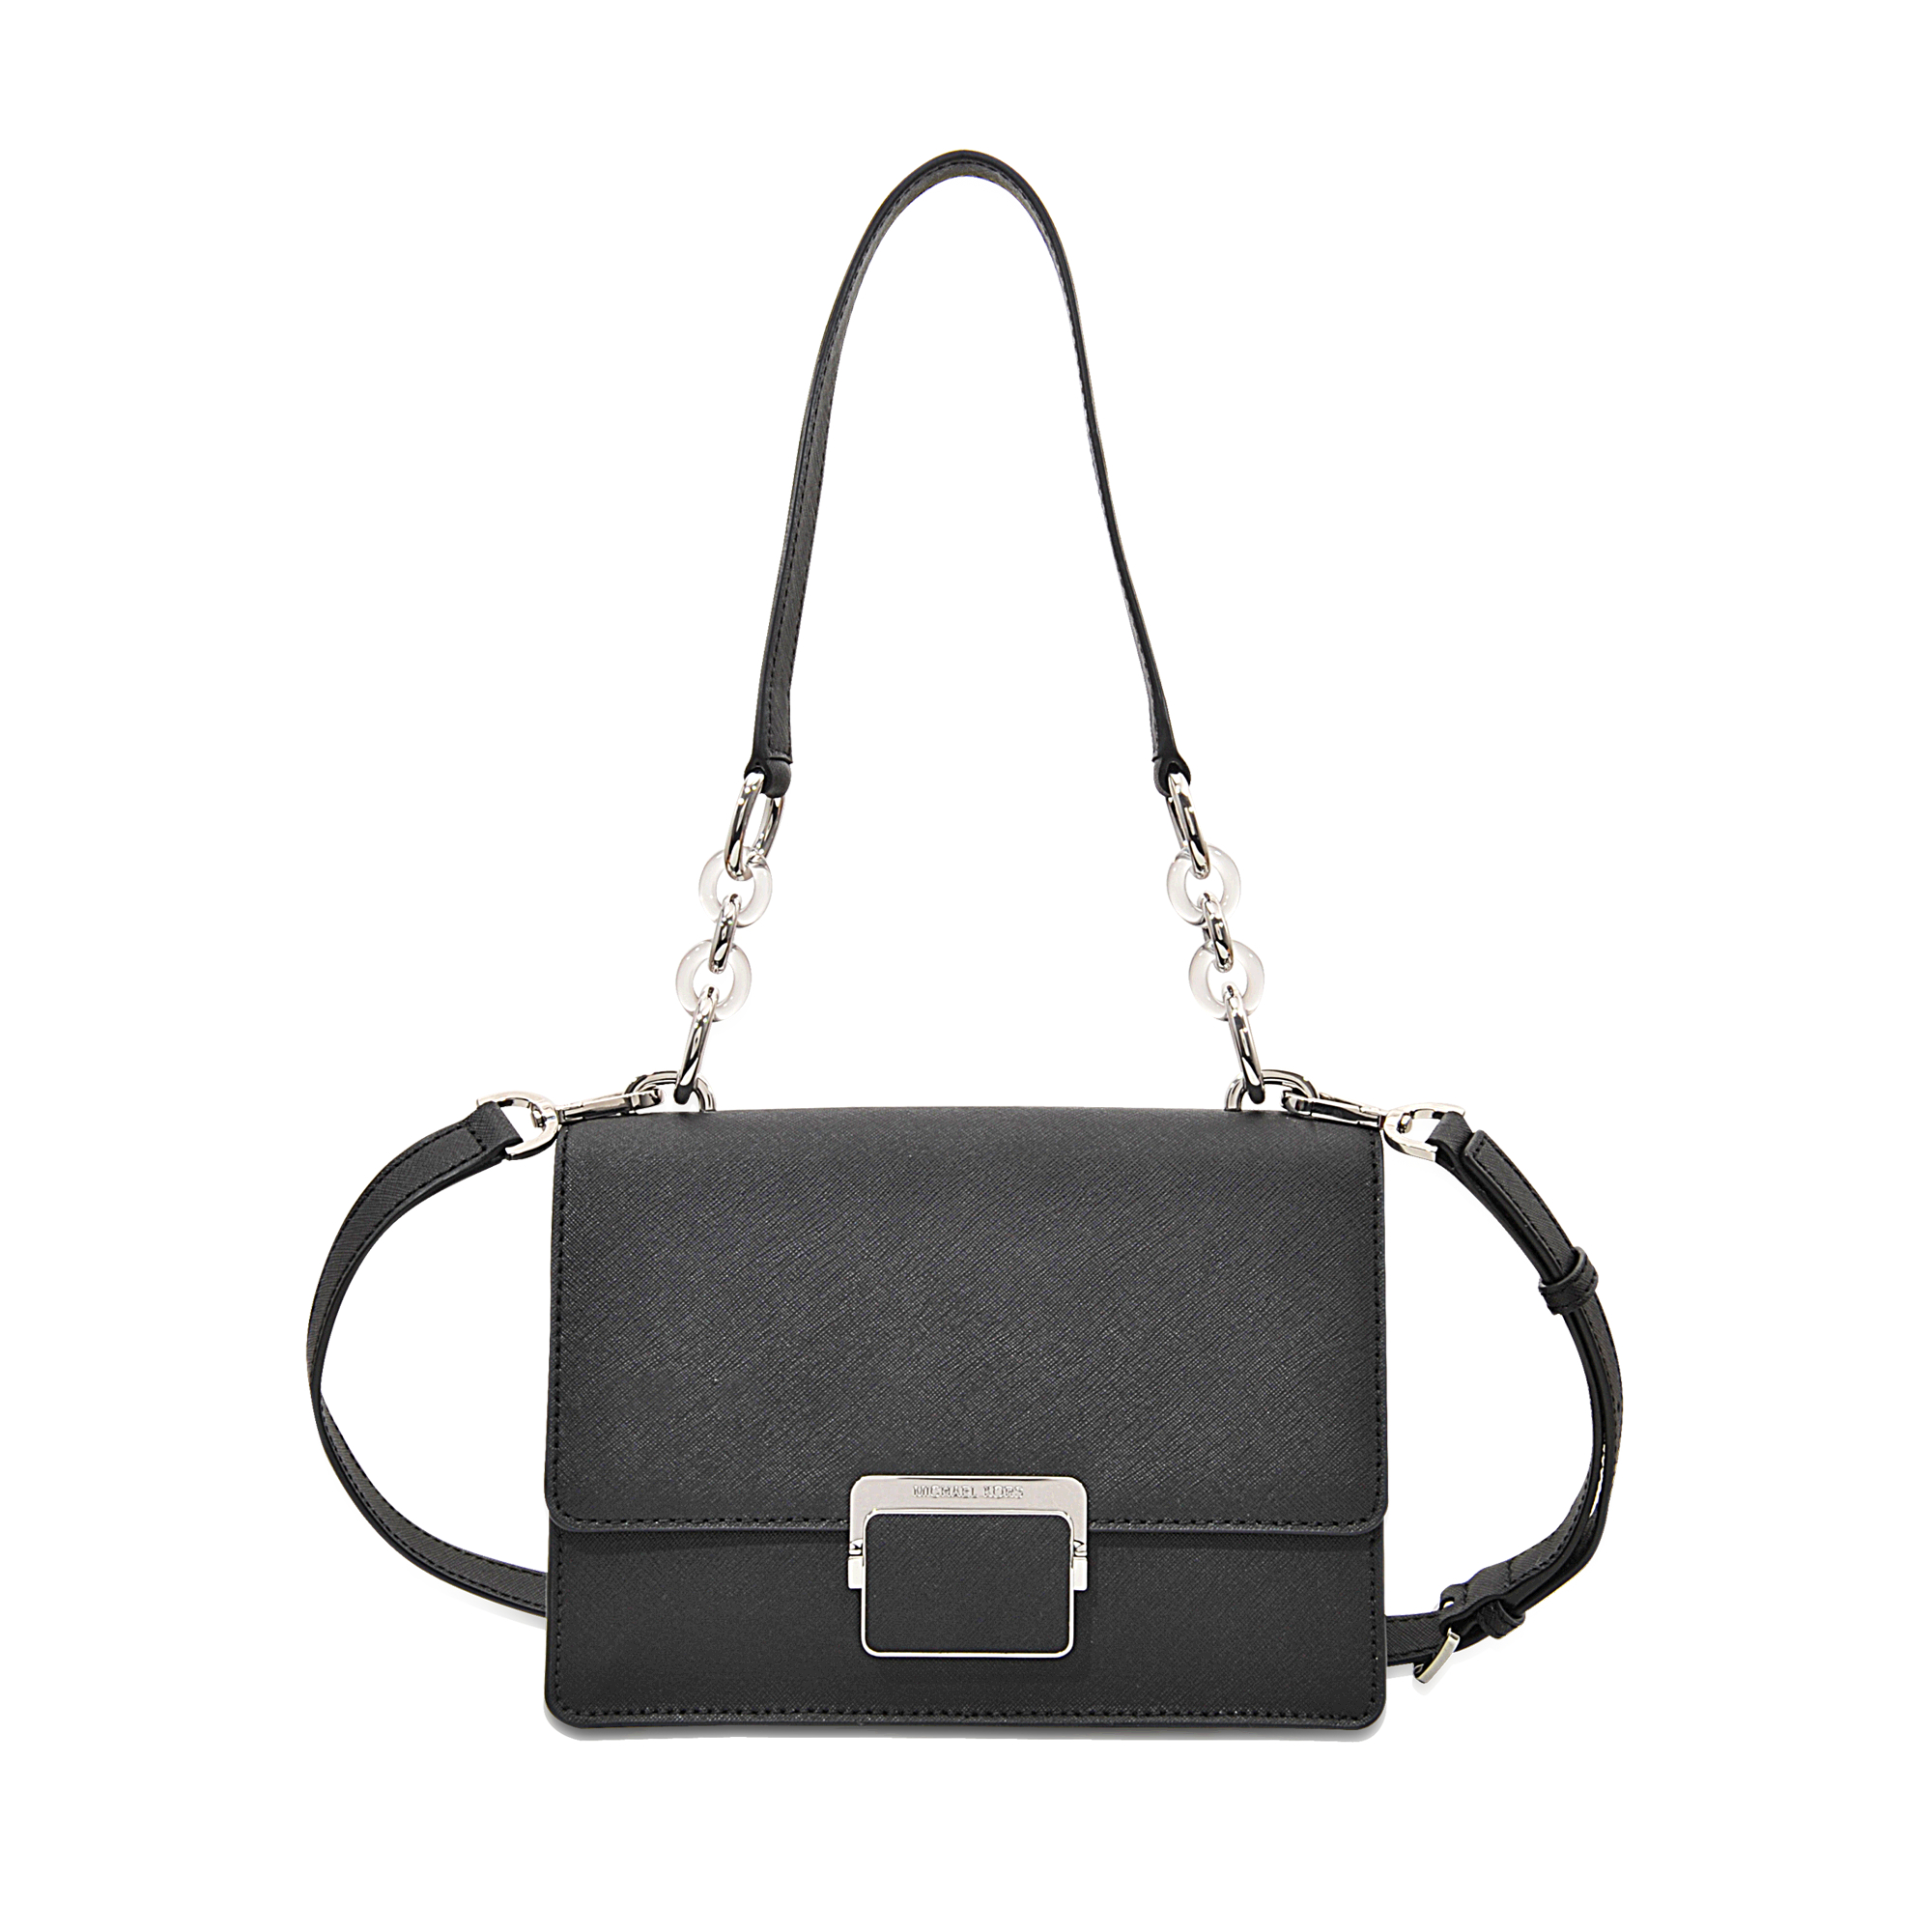 Michael Kors Cindy Laukku : Michael kors cynthia small shoulder bag in black